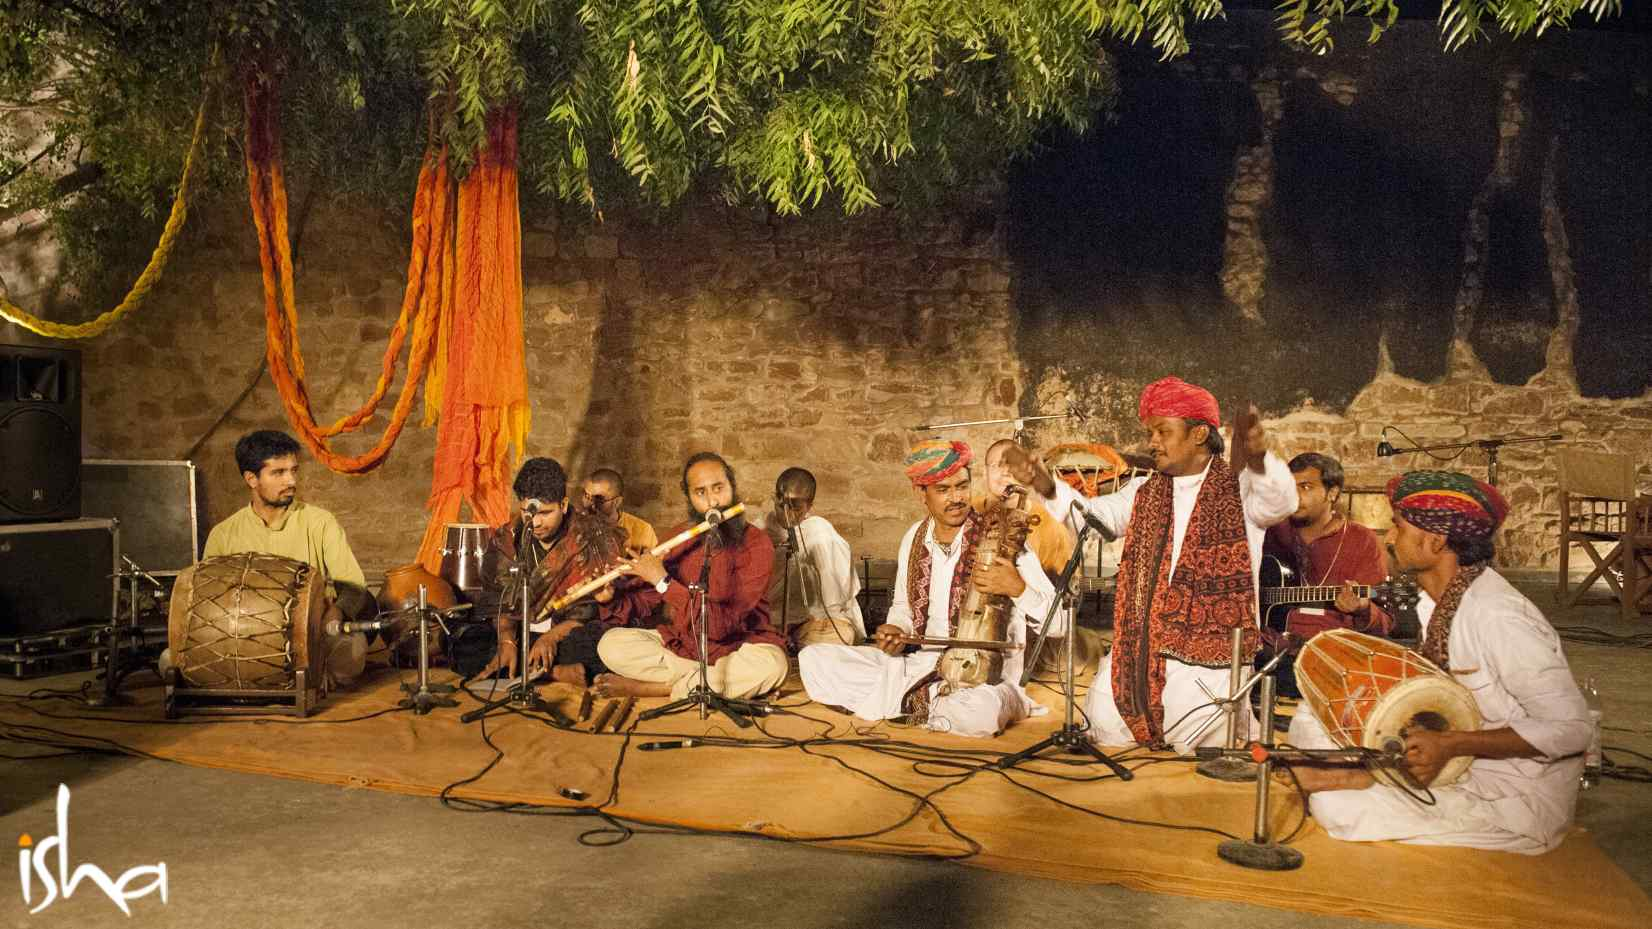 Sounds of Isha with Rajasthani folk artists in Nagaur, Rajasthan